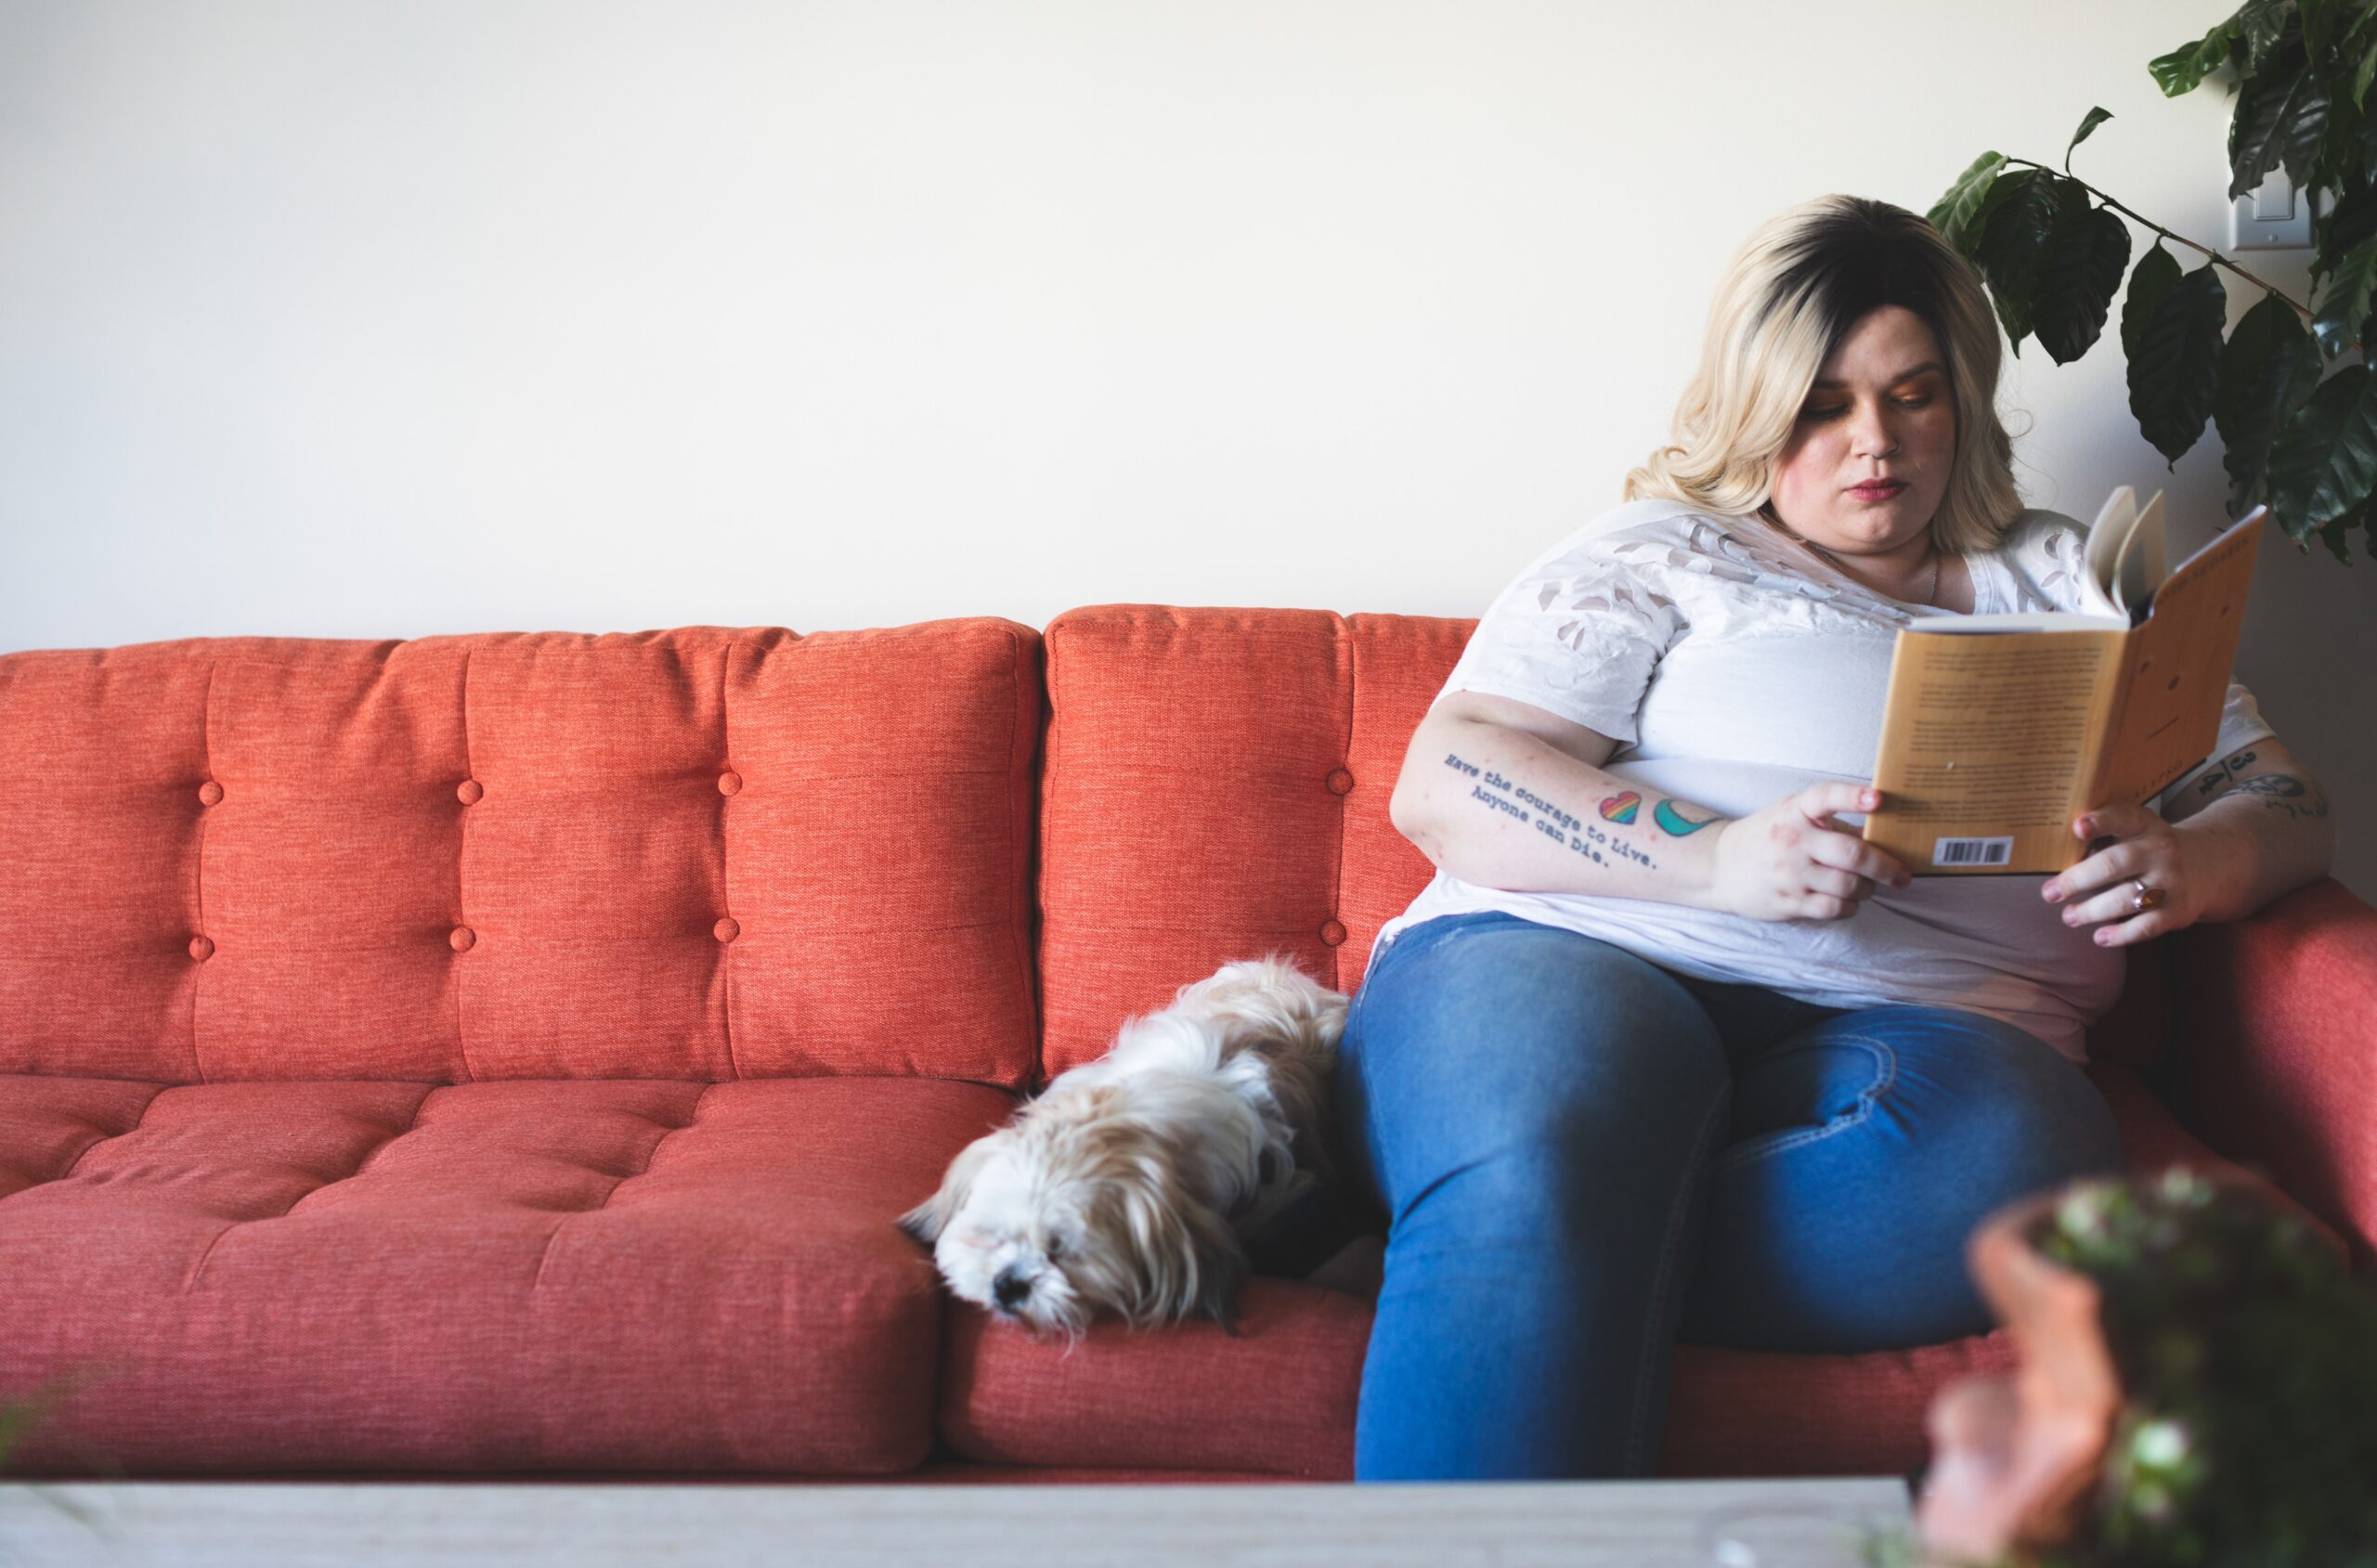 Larger blond woman sitting on a couch reading a book